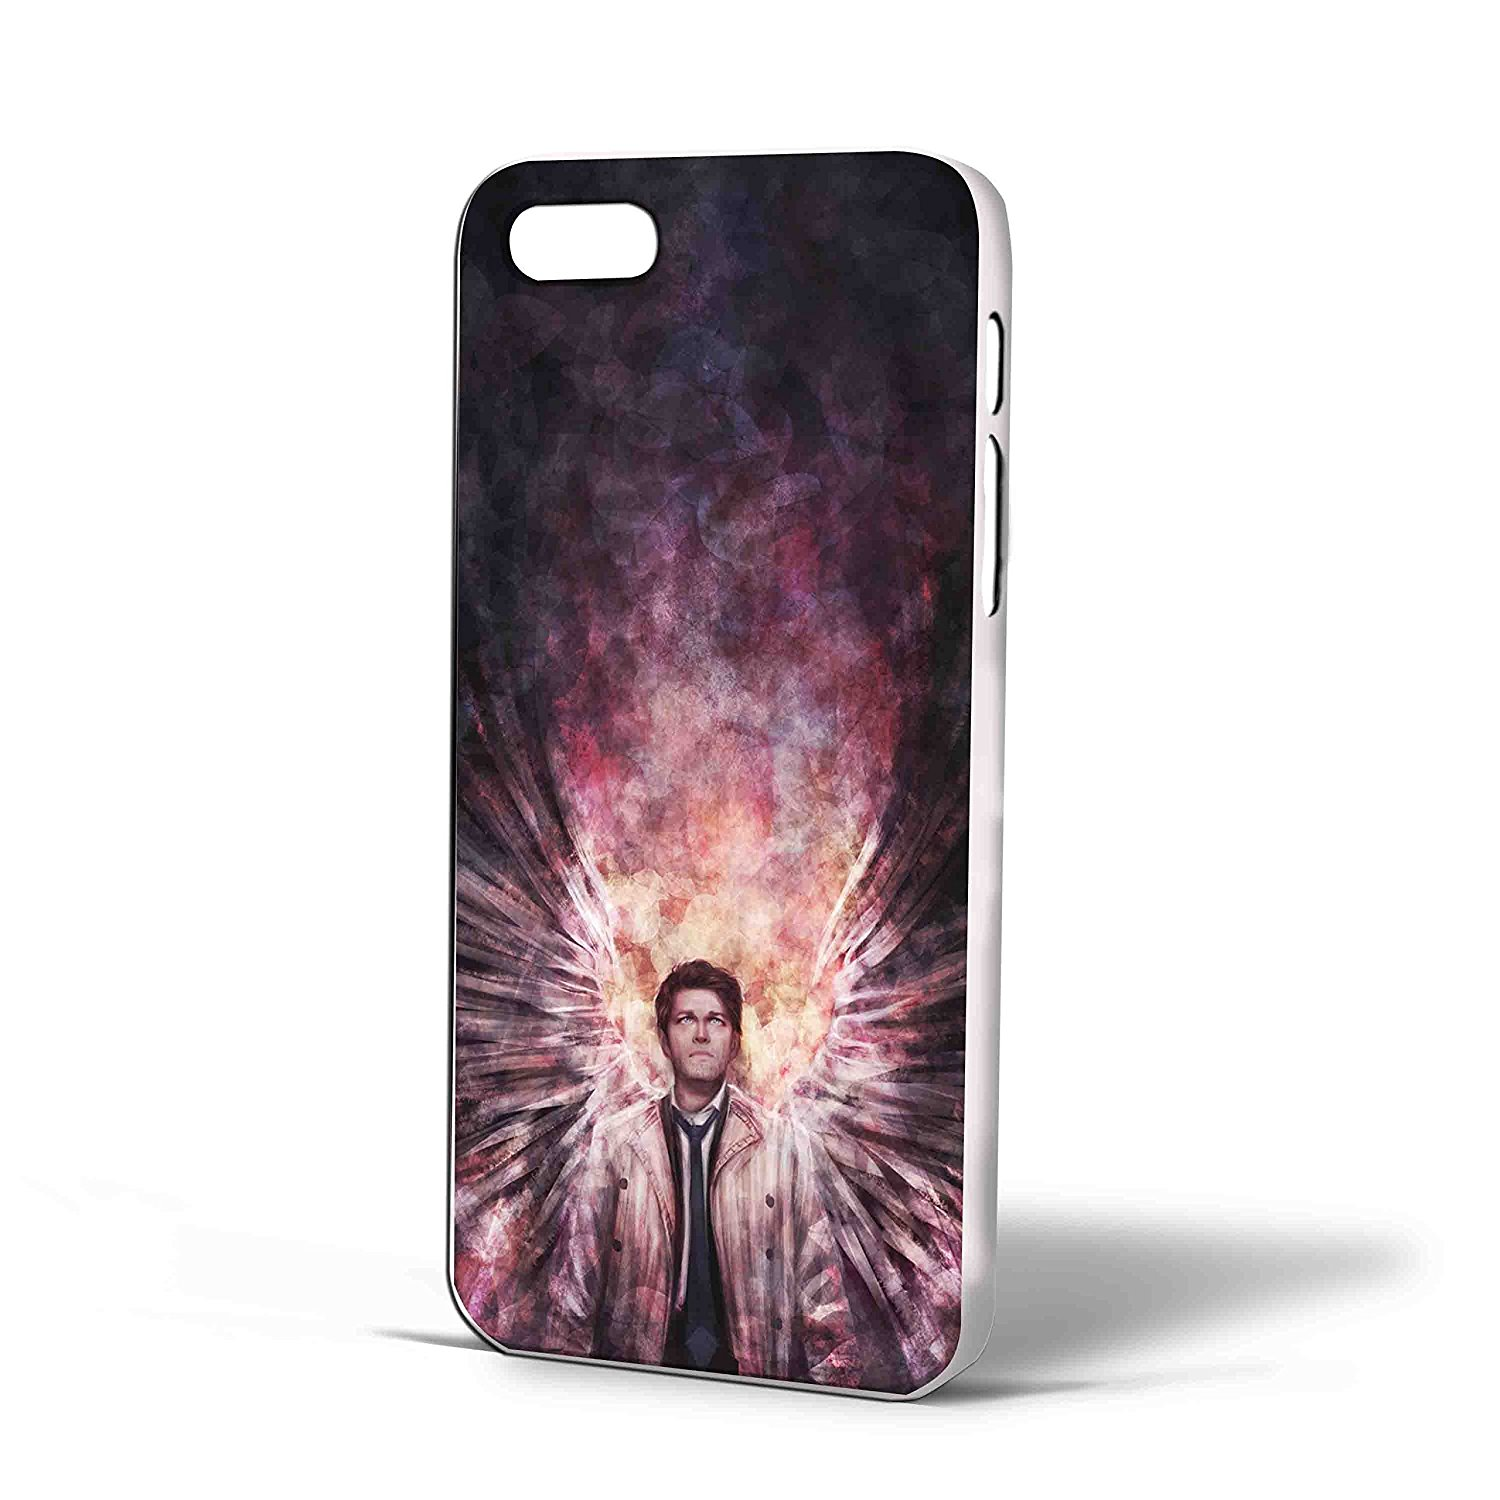 Ganma supernatural castiel galaxy Case For iPhone Case (Case For iPhone 5c White)